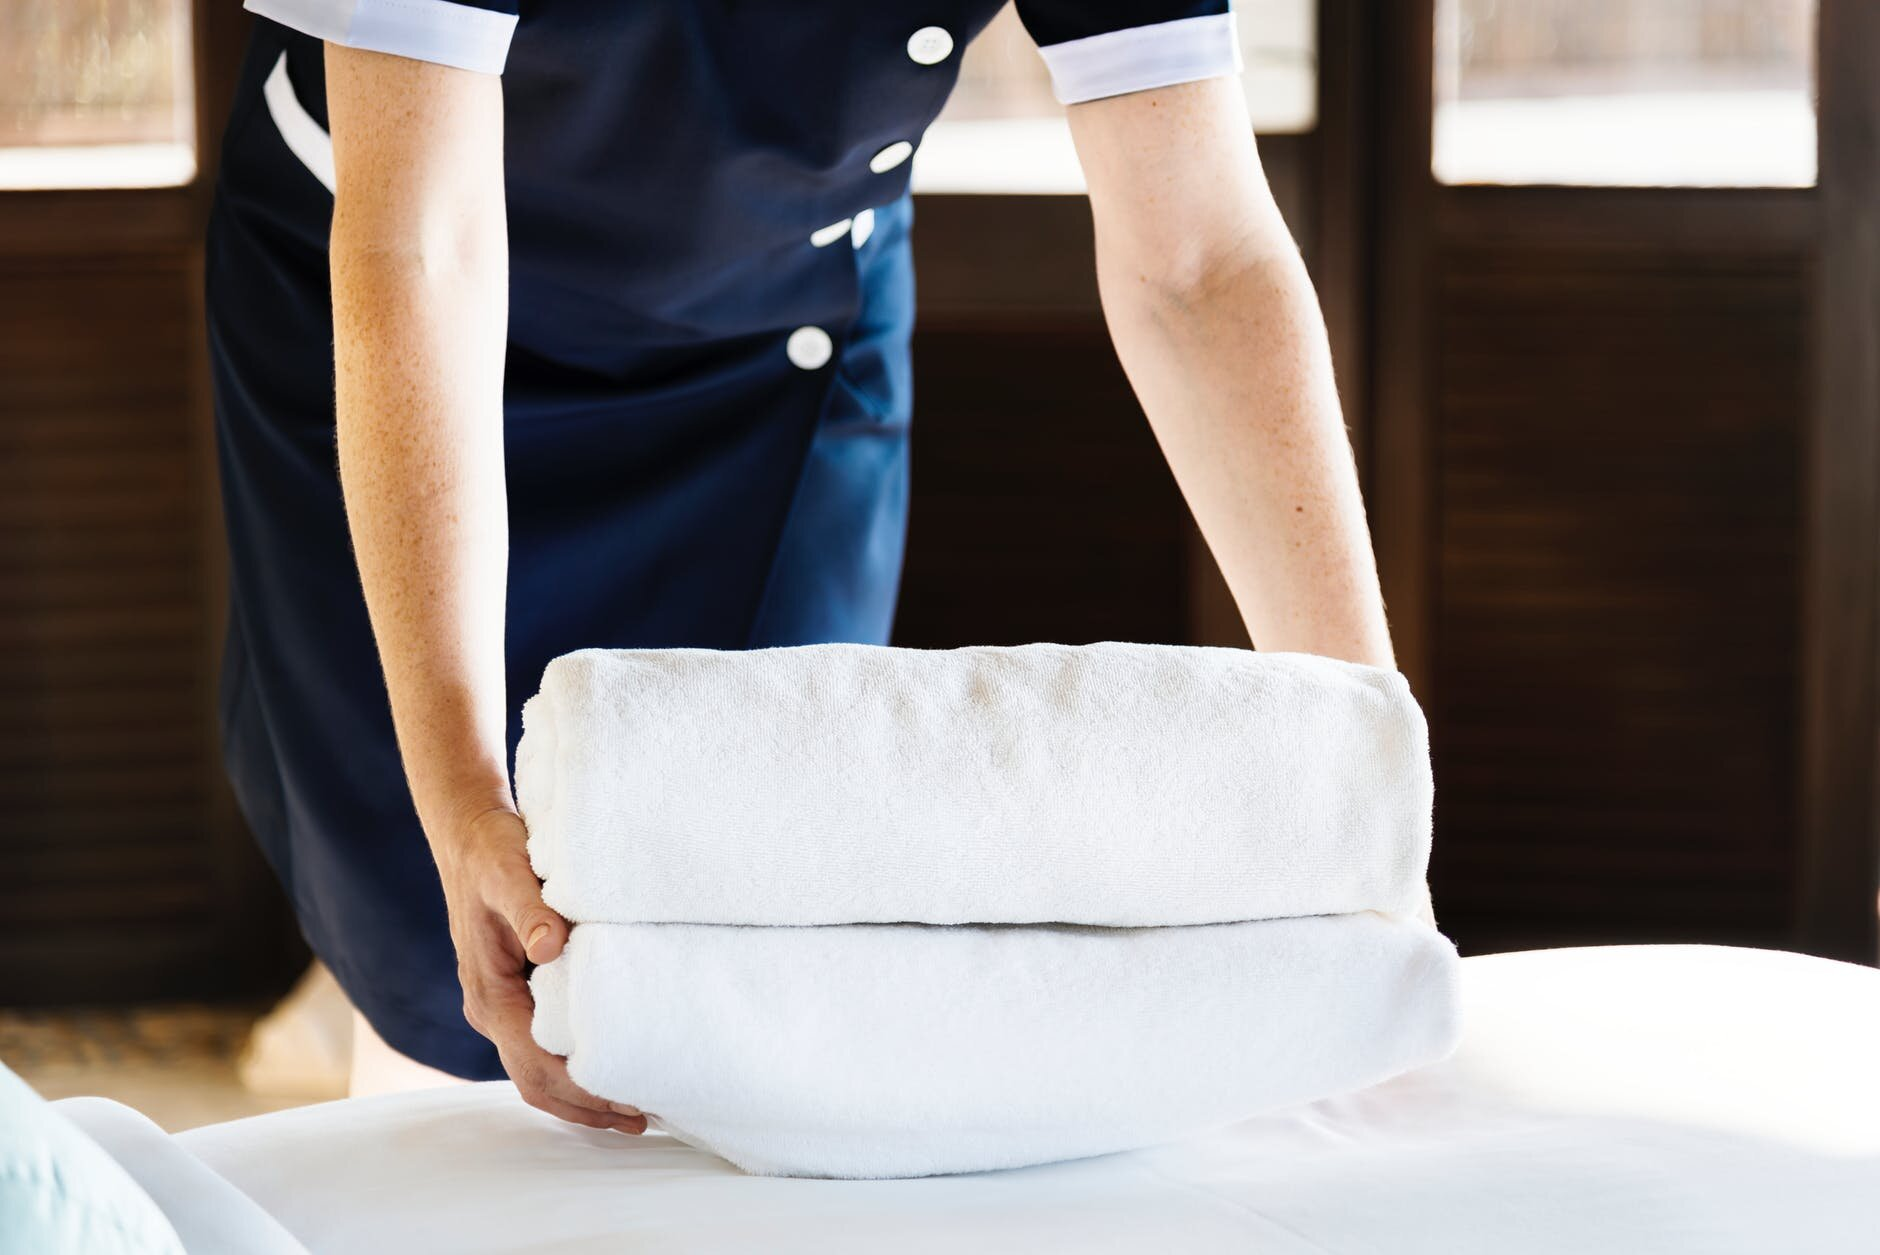 Hotels can reduce energy costs… - Hotels & Motels can reduce costly energy costs by switching to propane gas. Propane is cheaper than electricity (natural gas), and it's much more energy-efficient.